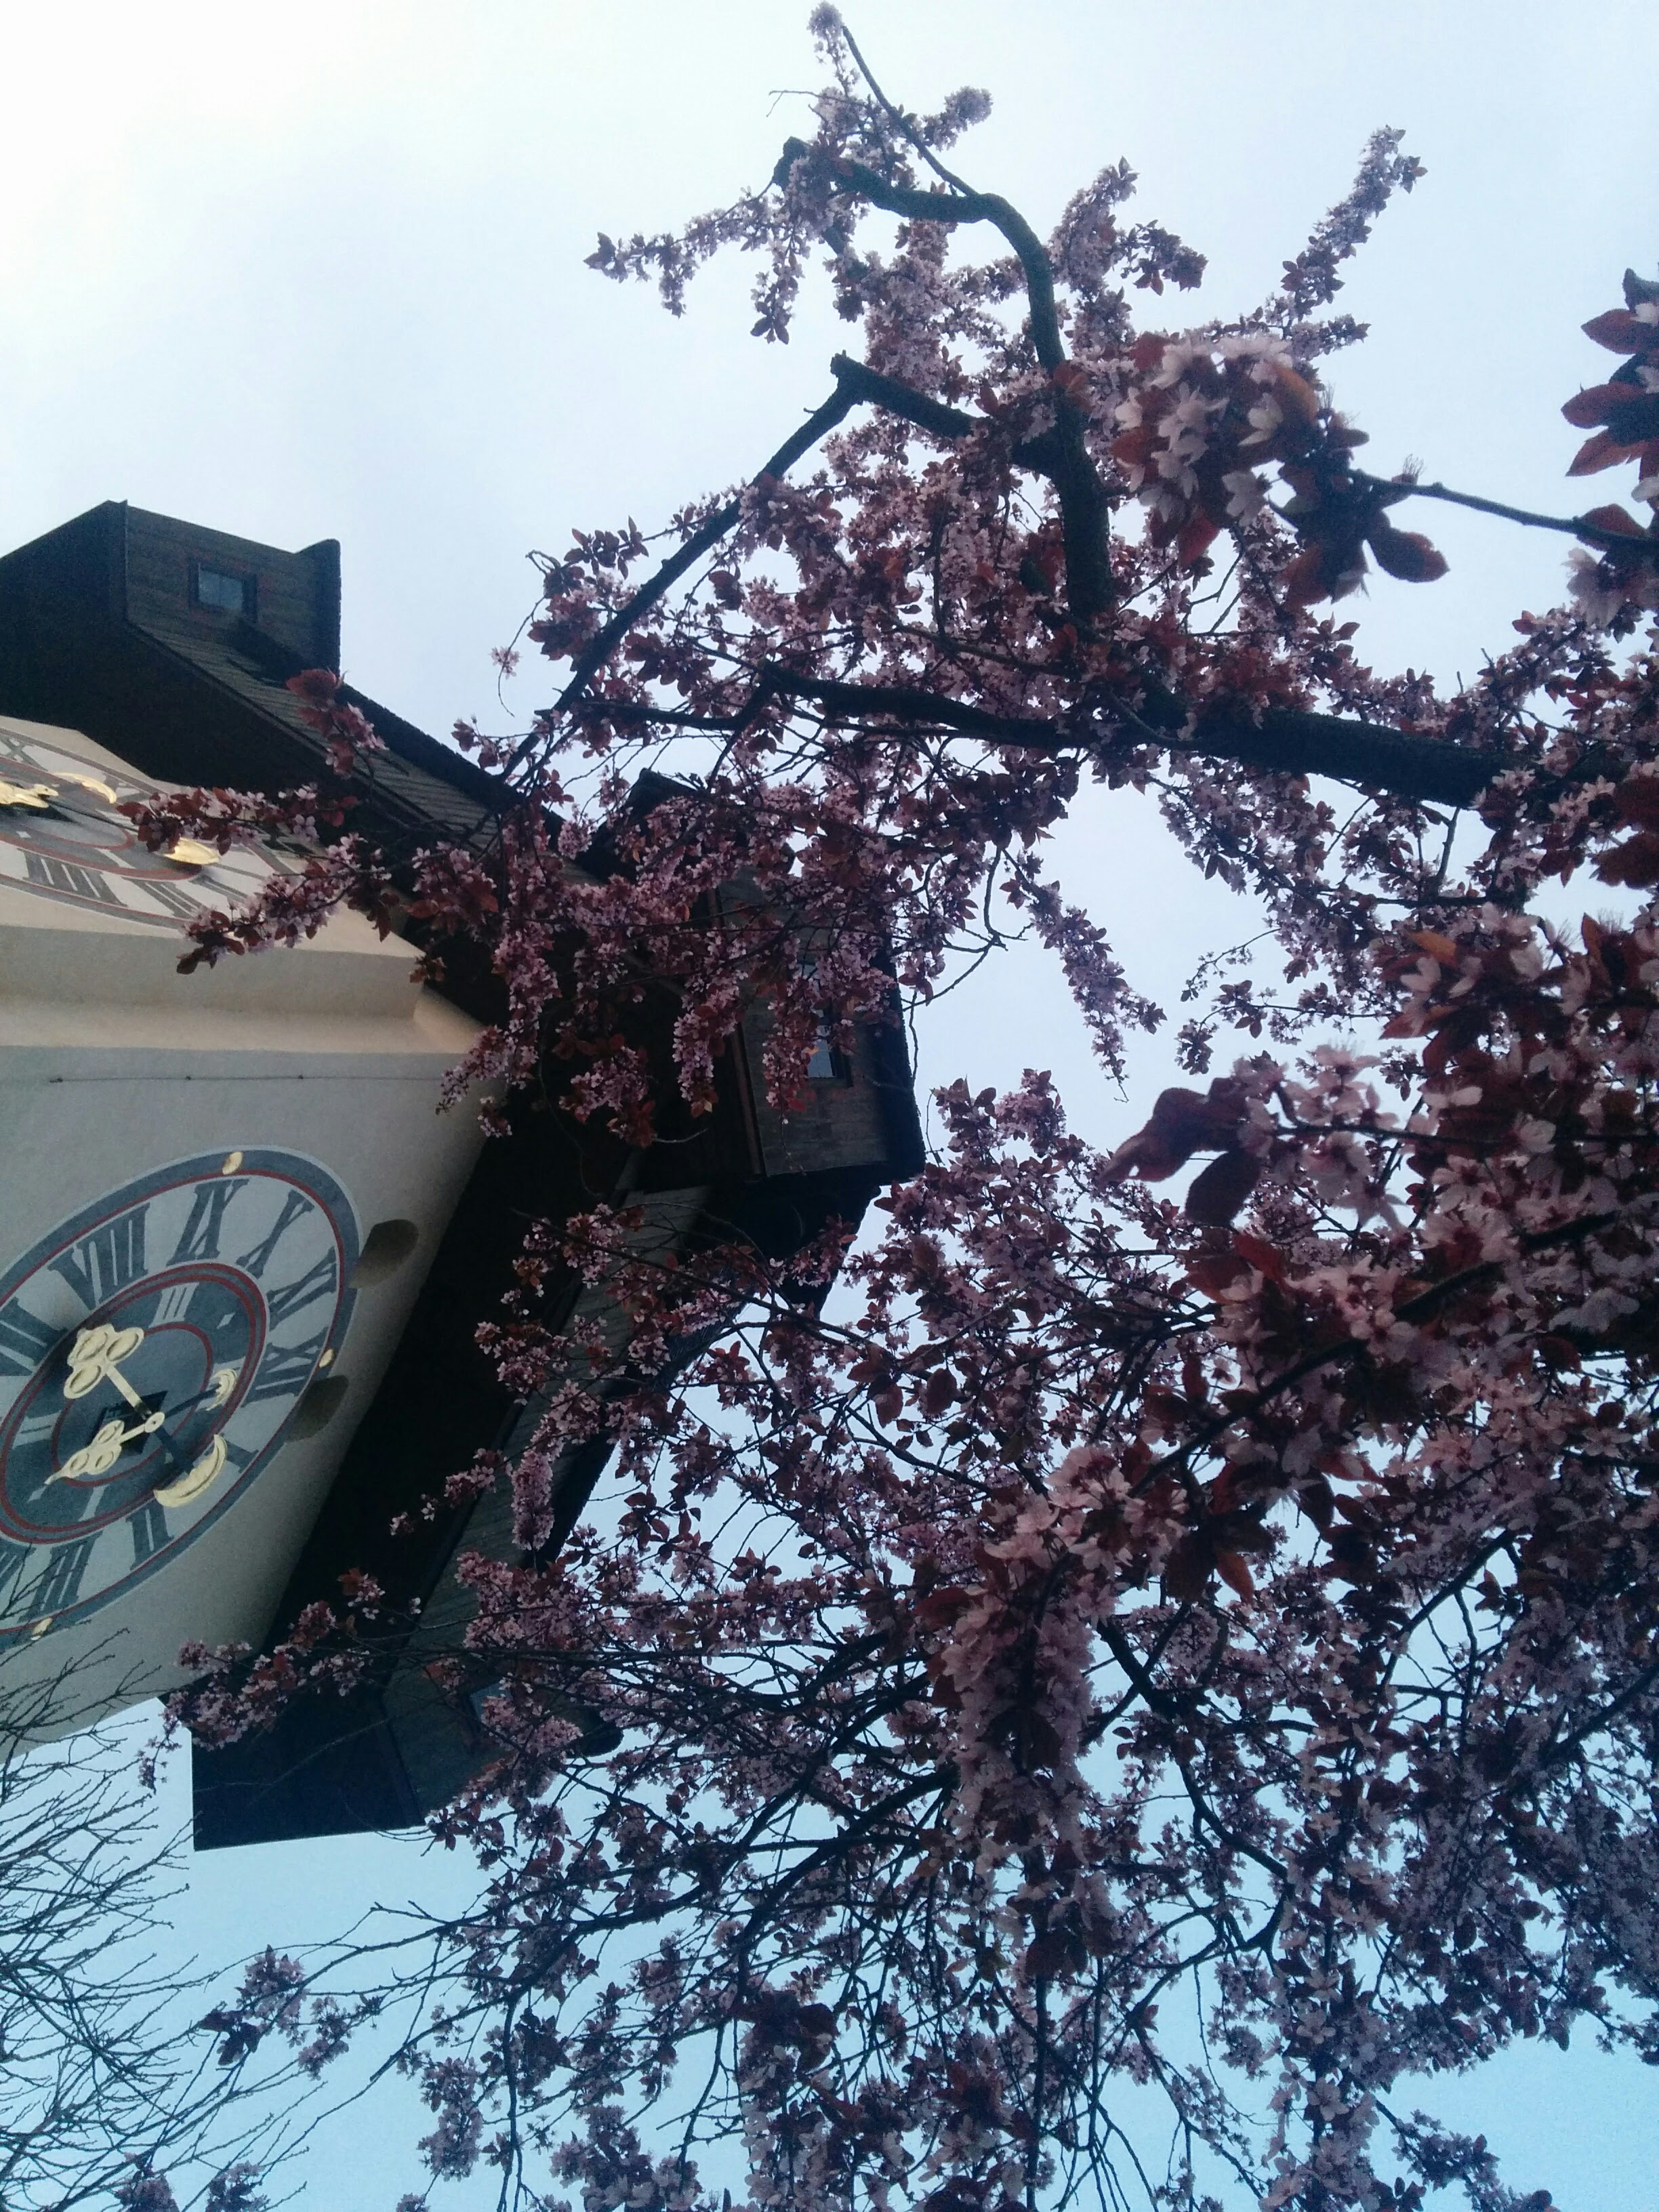 the Uhrturm with flower blossoms